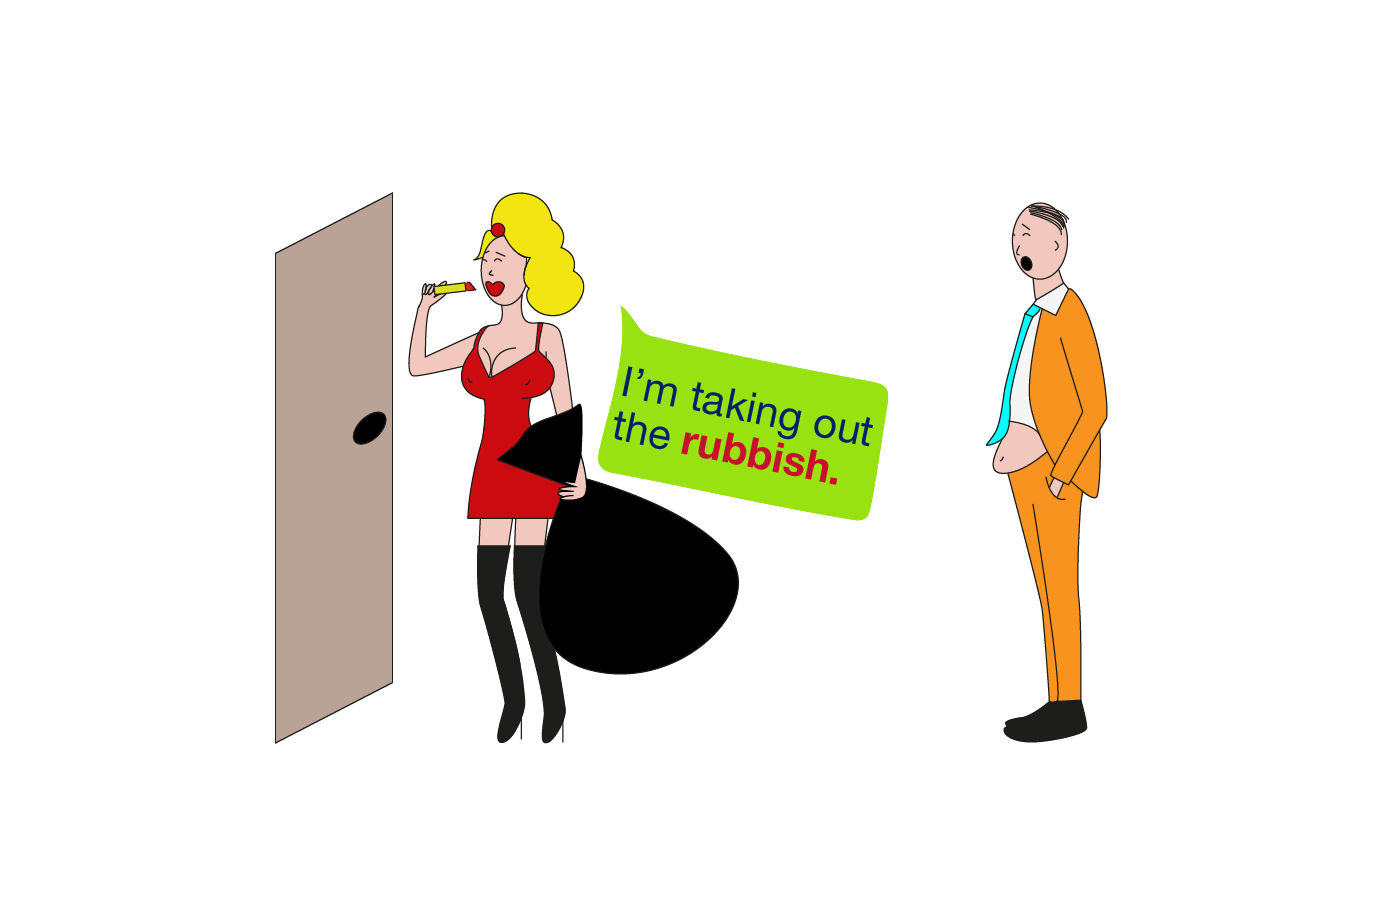 rubbish vocabulary meaning